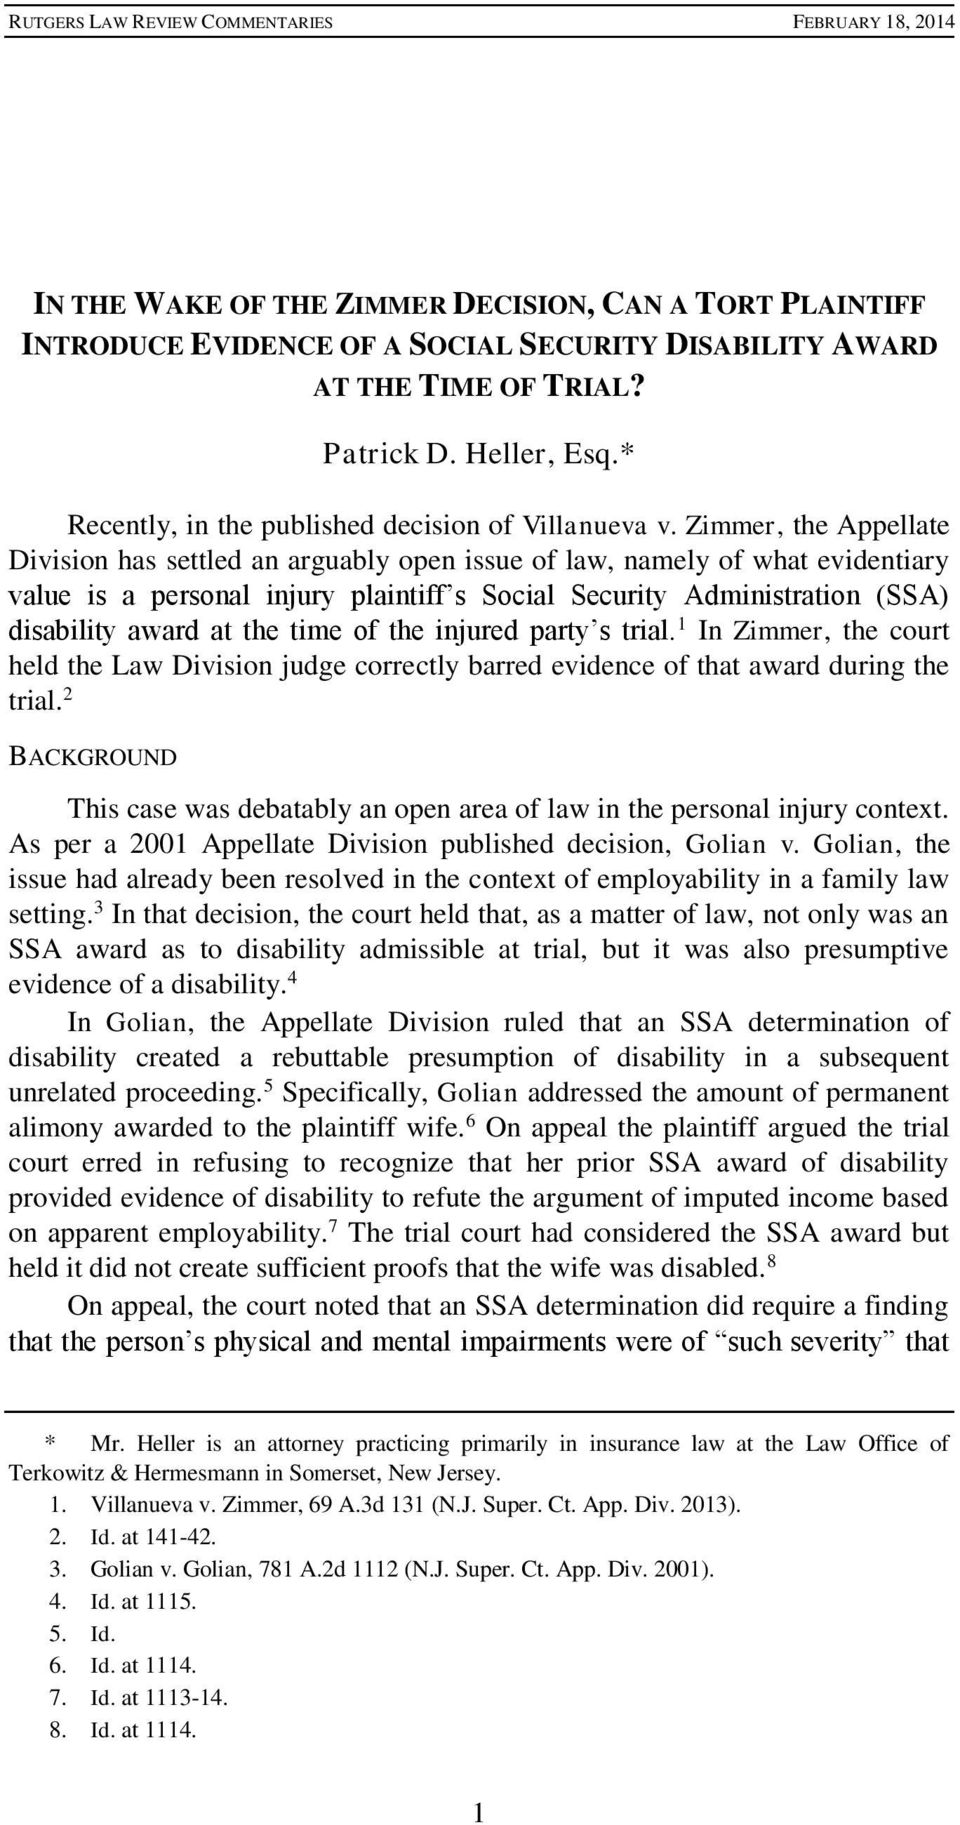 Zimmer, the Appellate Division has settled an arguably open issue of law, namely of what evidentiary value is a personal injury plaintiff s Social Security Administration (SSA) disability award at